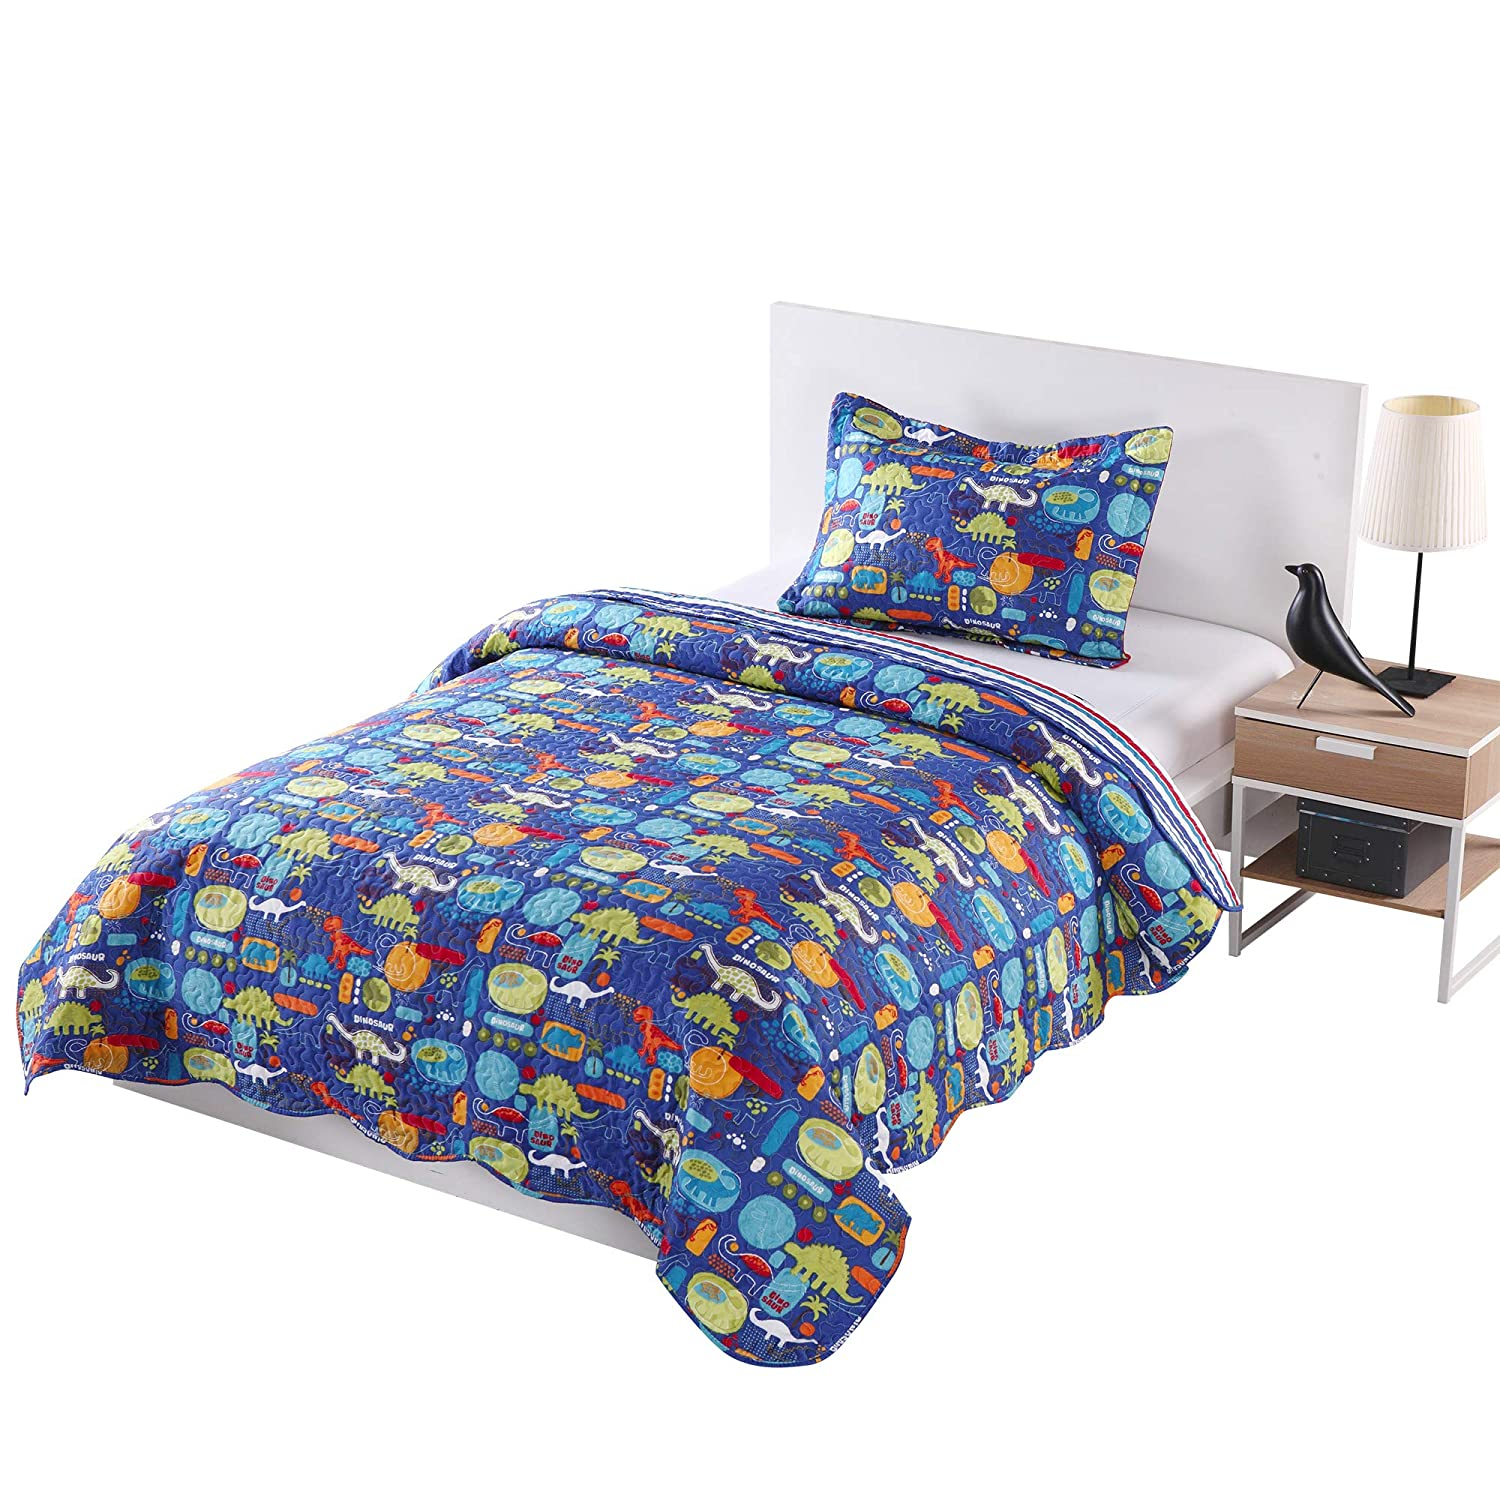 MarCielo 2 Piece Kids Bedspread Quilts Set Throw Blanket for Teens Boys Girls Bed Printed Bedding Coverlet, Twin Size, Dinosaur (Twin) ocean home fashion Quilt dinosaur TWIN